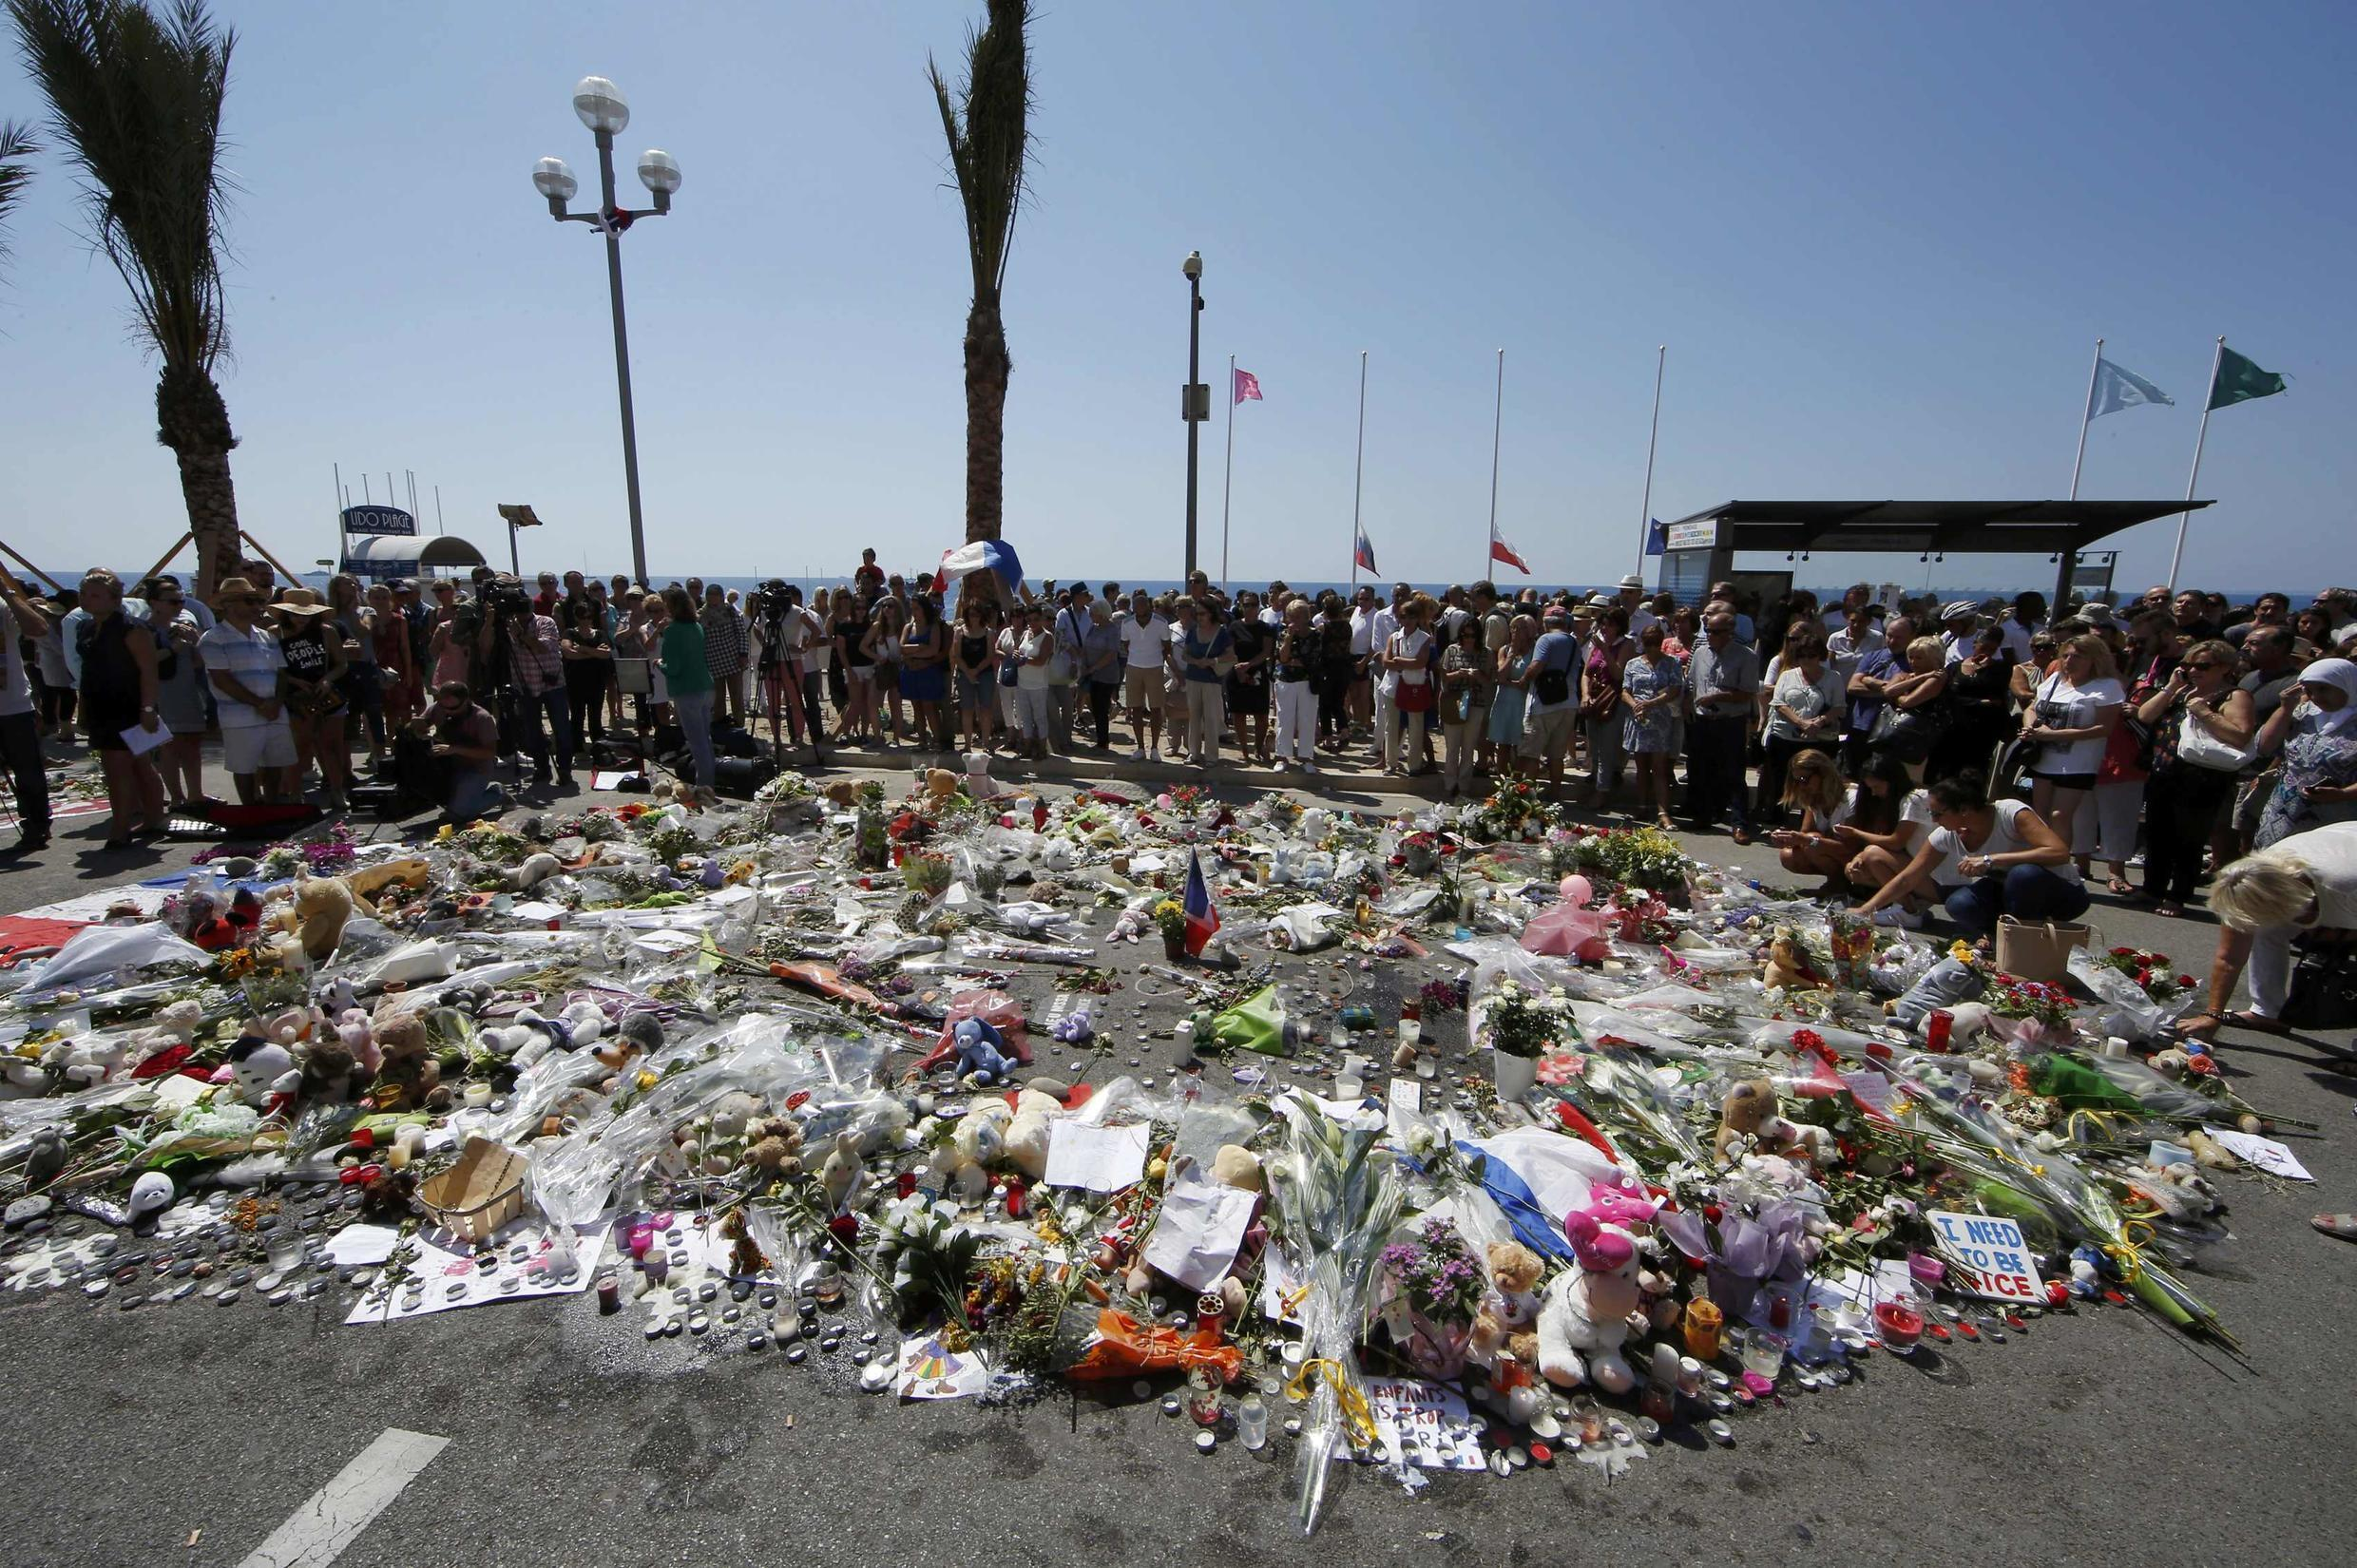 People gather around a makeshift memorial with flowers and candles placed along the Promenade des Anglais to pay tribute to the victims of the Bastille Day attack in Nice.